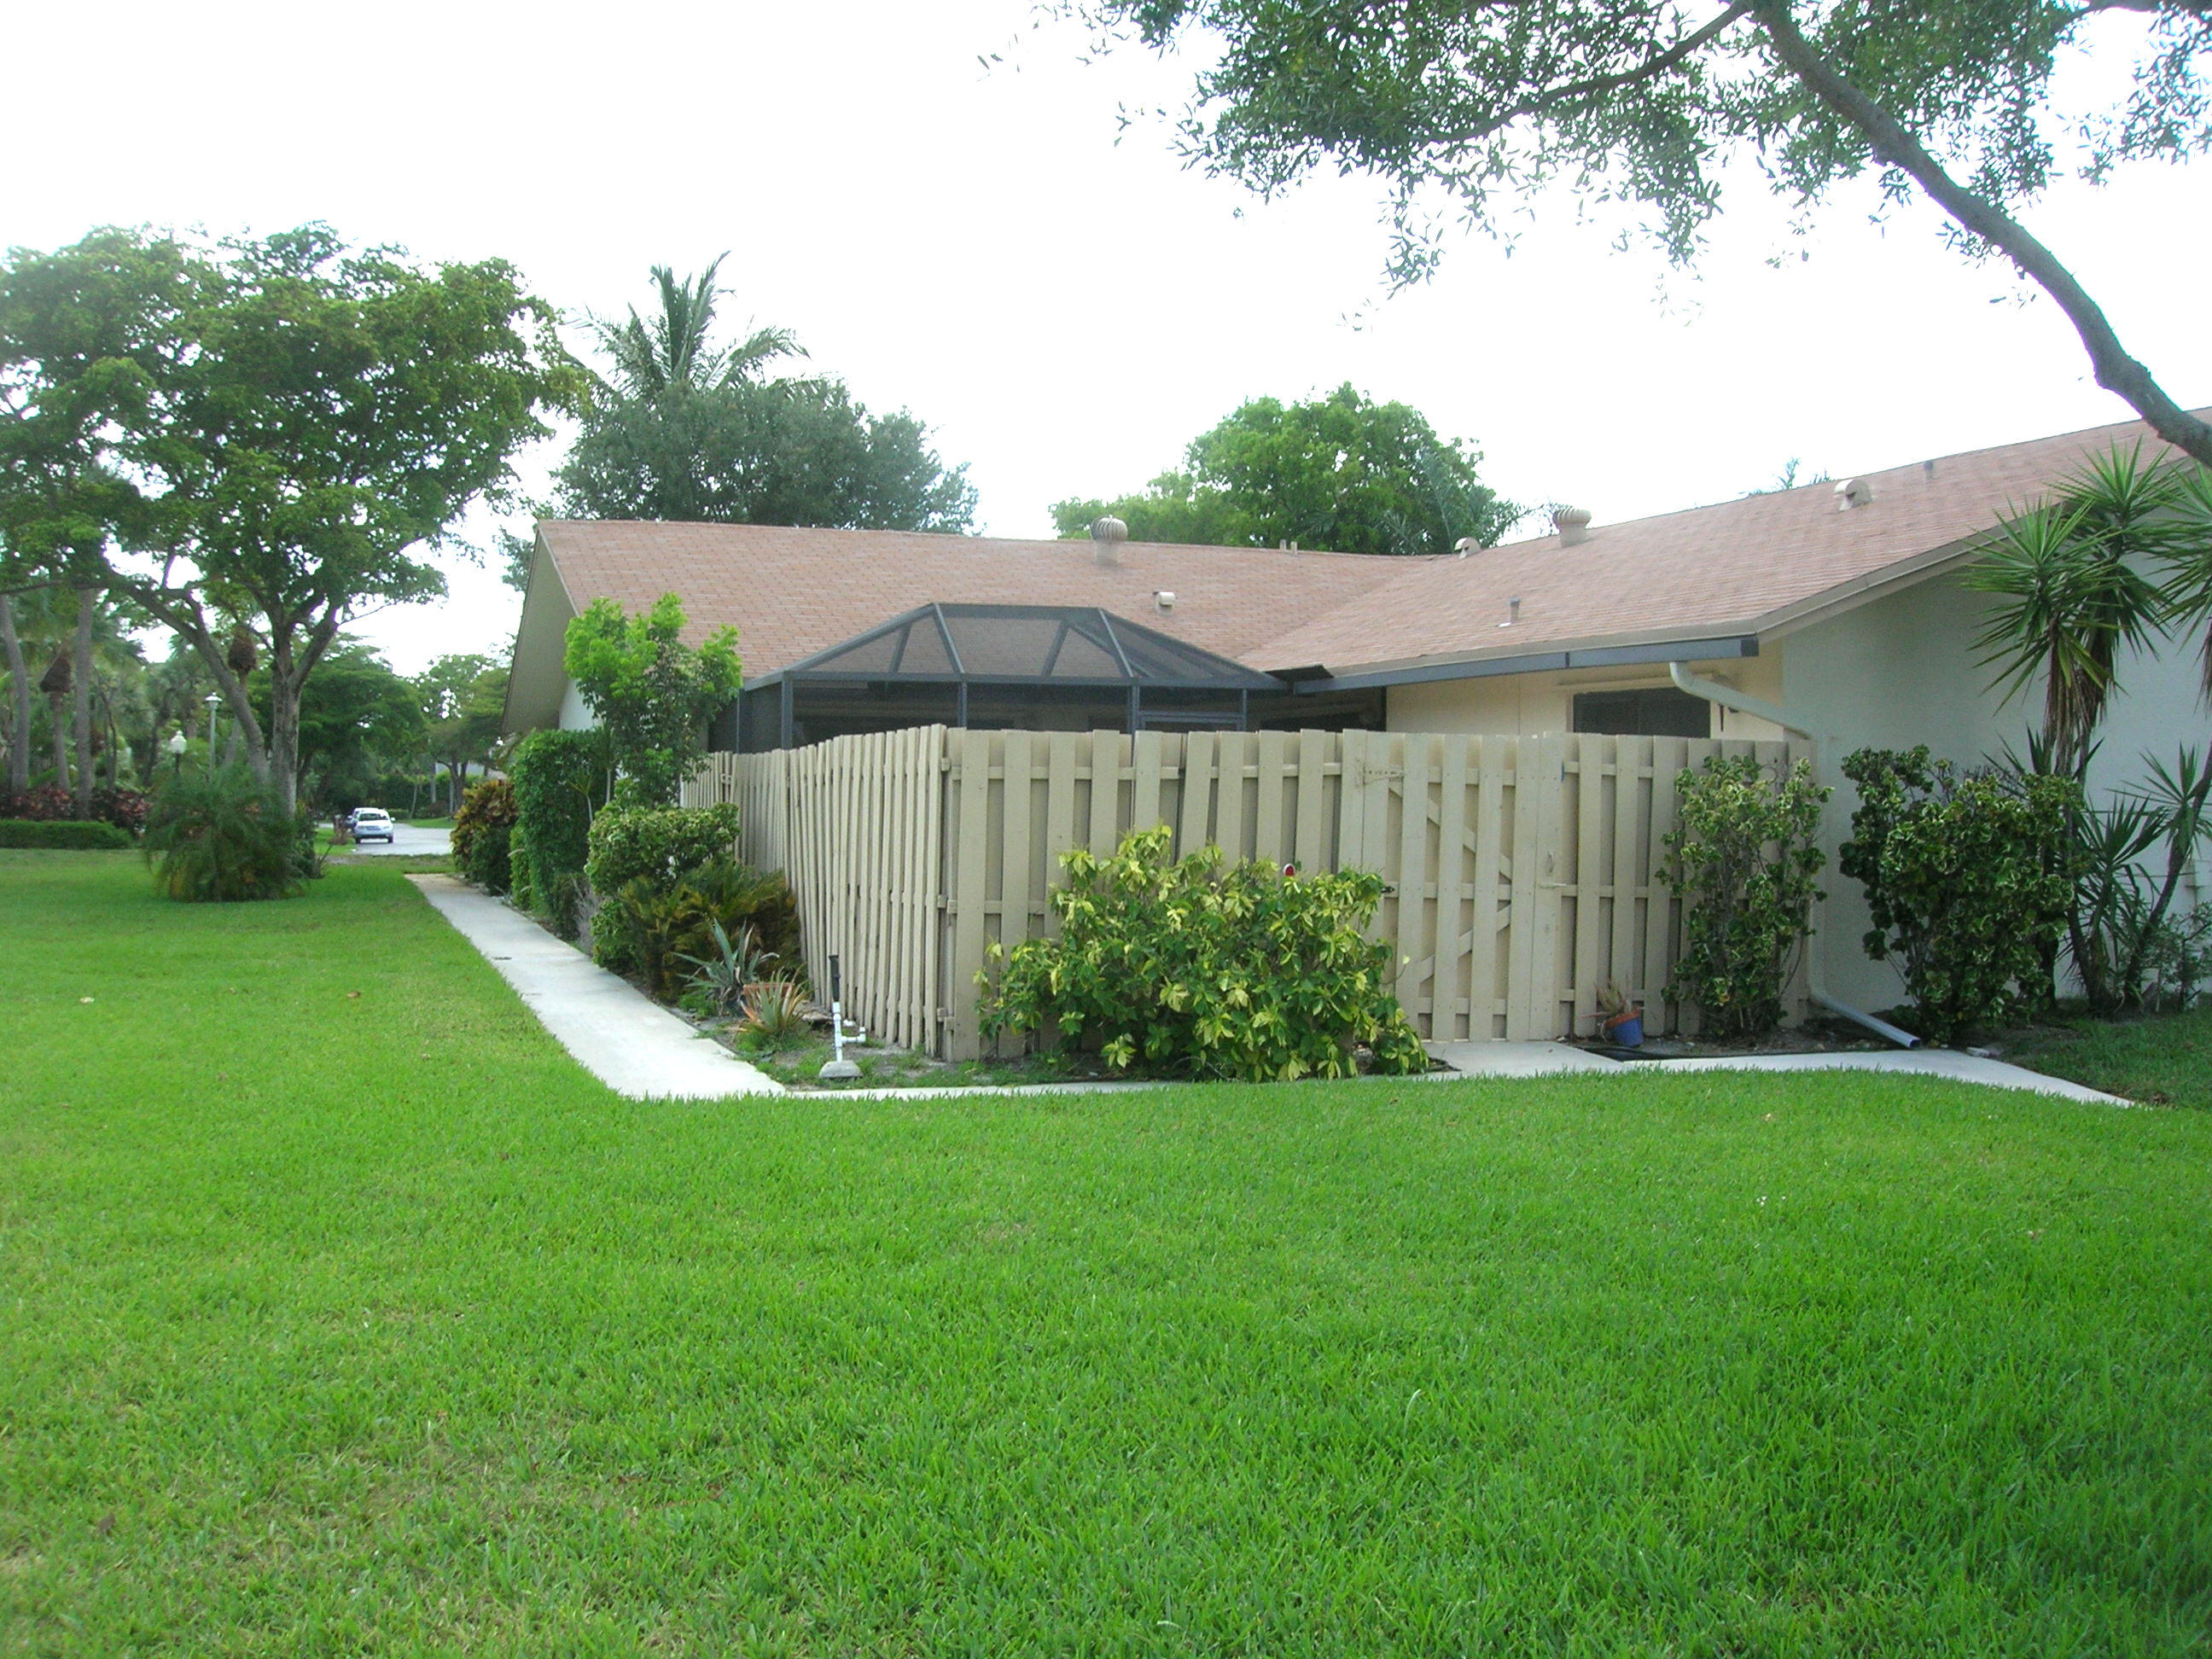 Rainberry Bay homes recently sold in Delray Beach FL on